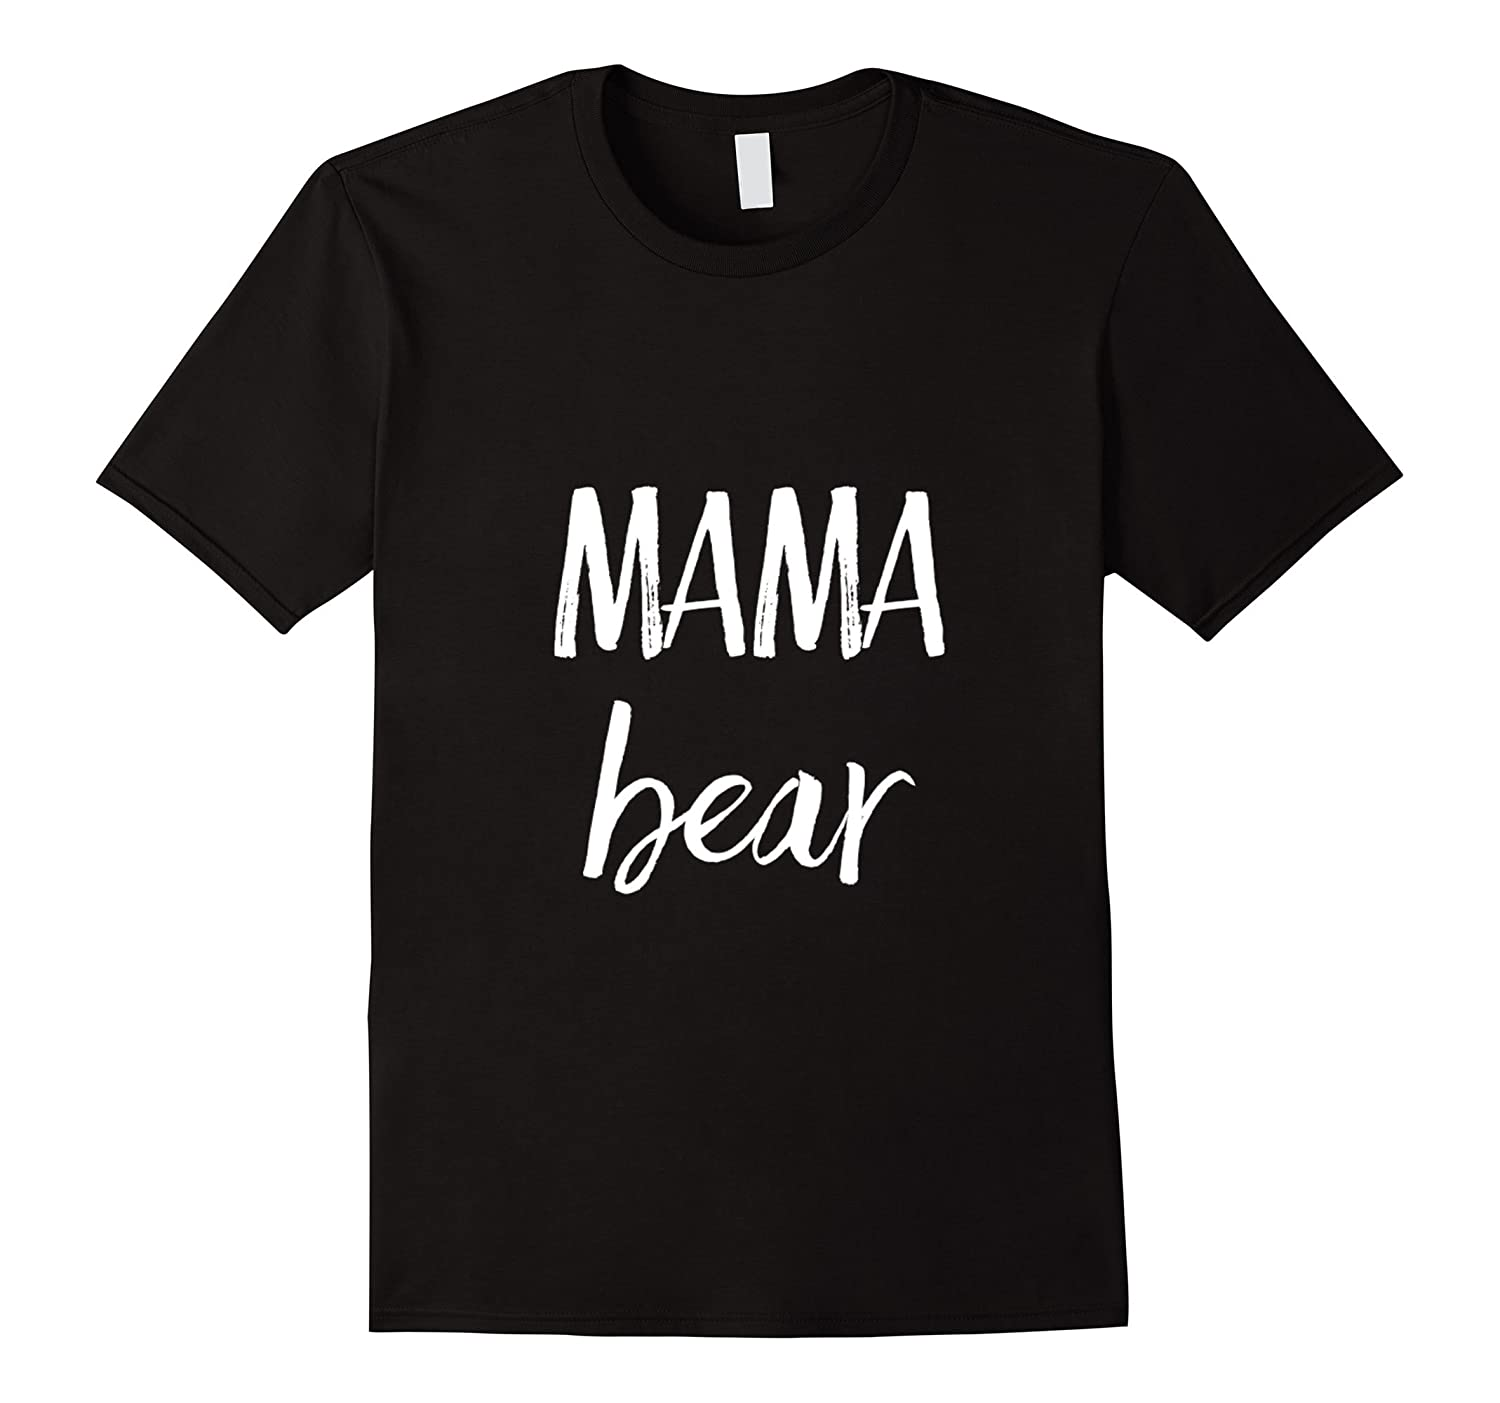 Mama Bear Shirt Cute Mother's Gift T-Shirt Funny Humor Tee-Art